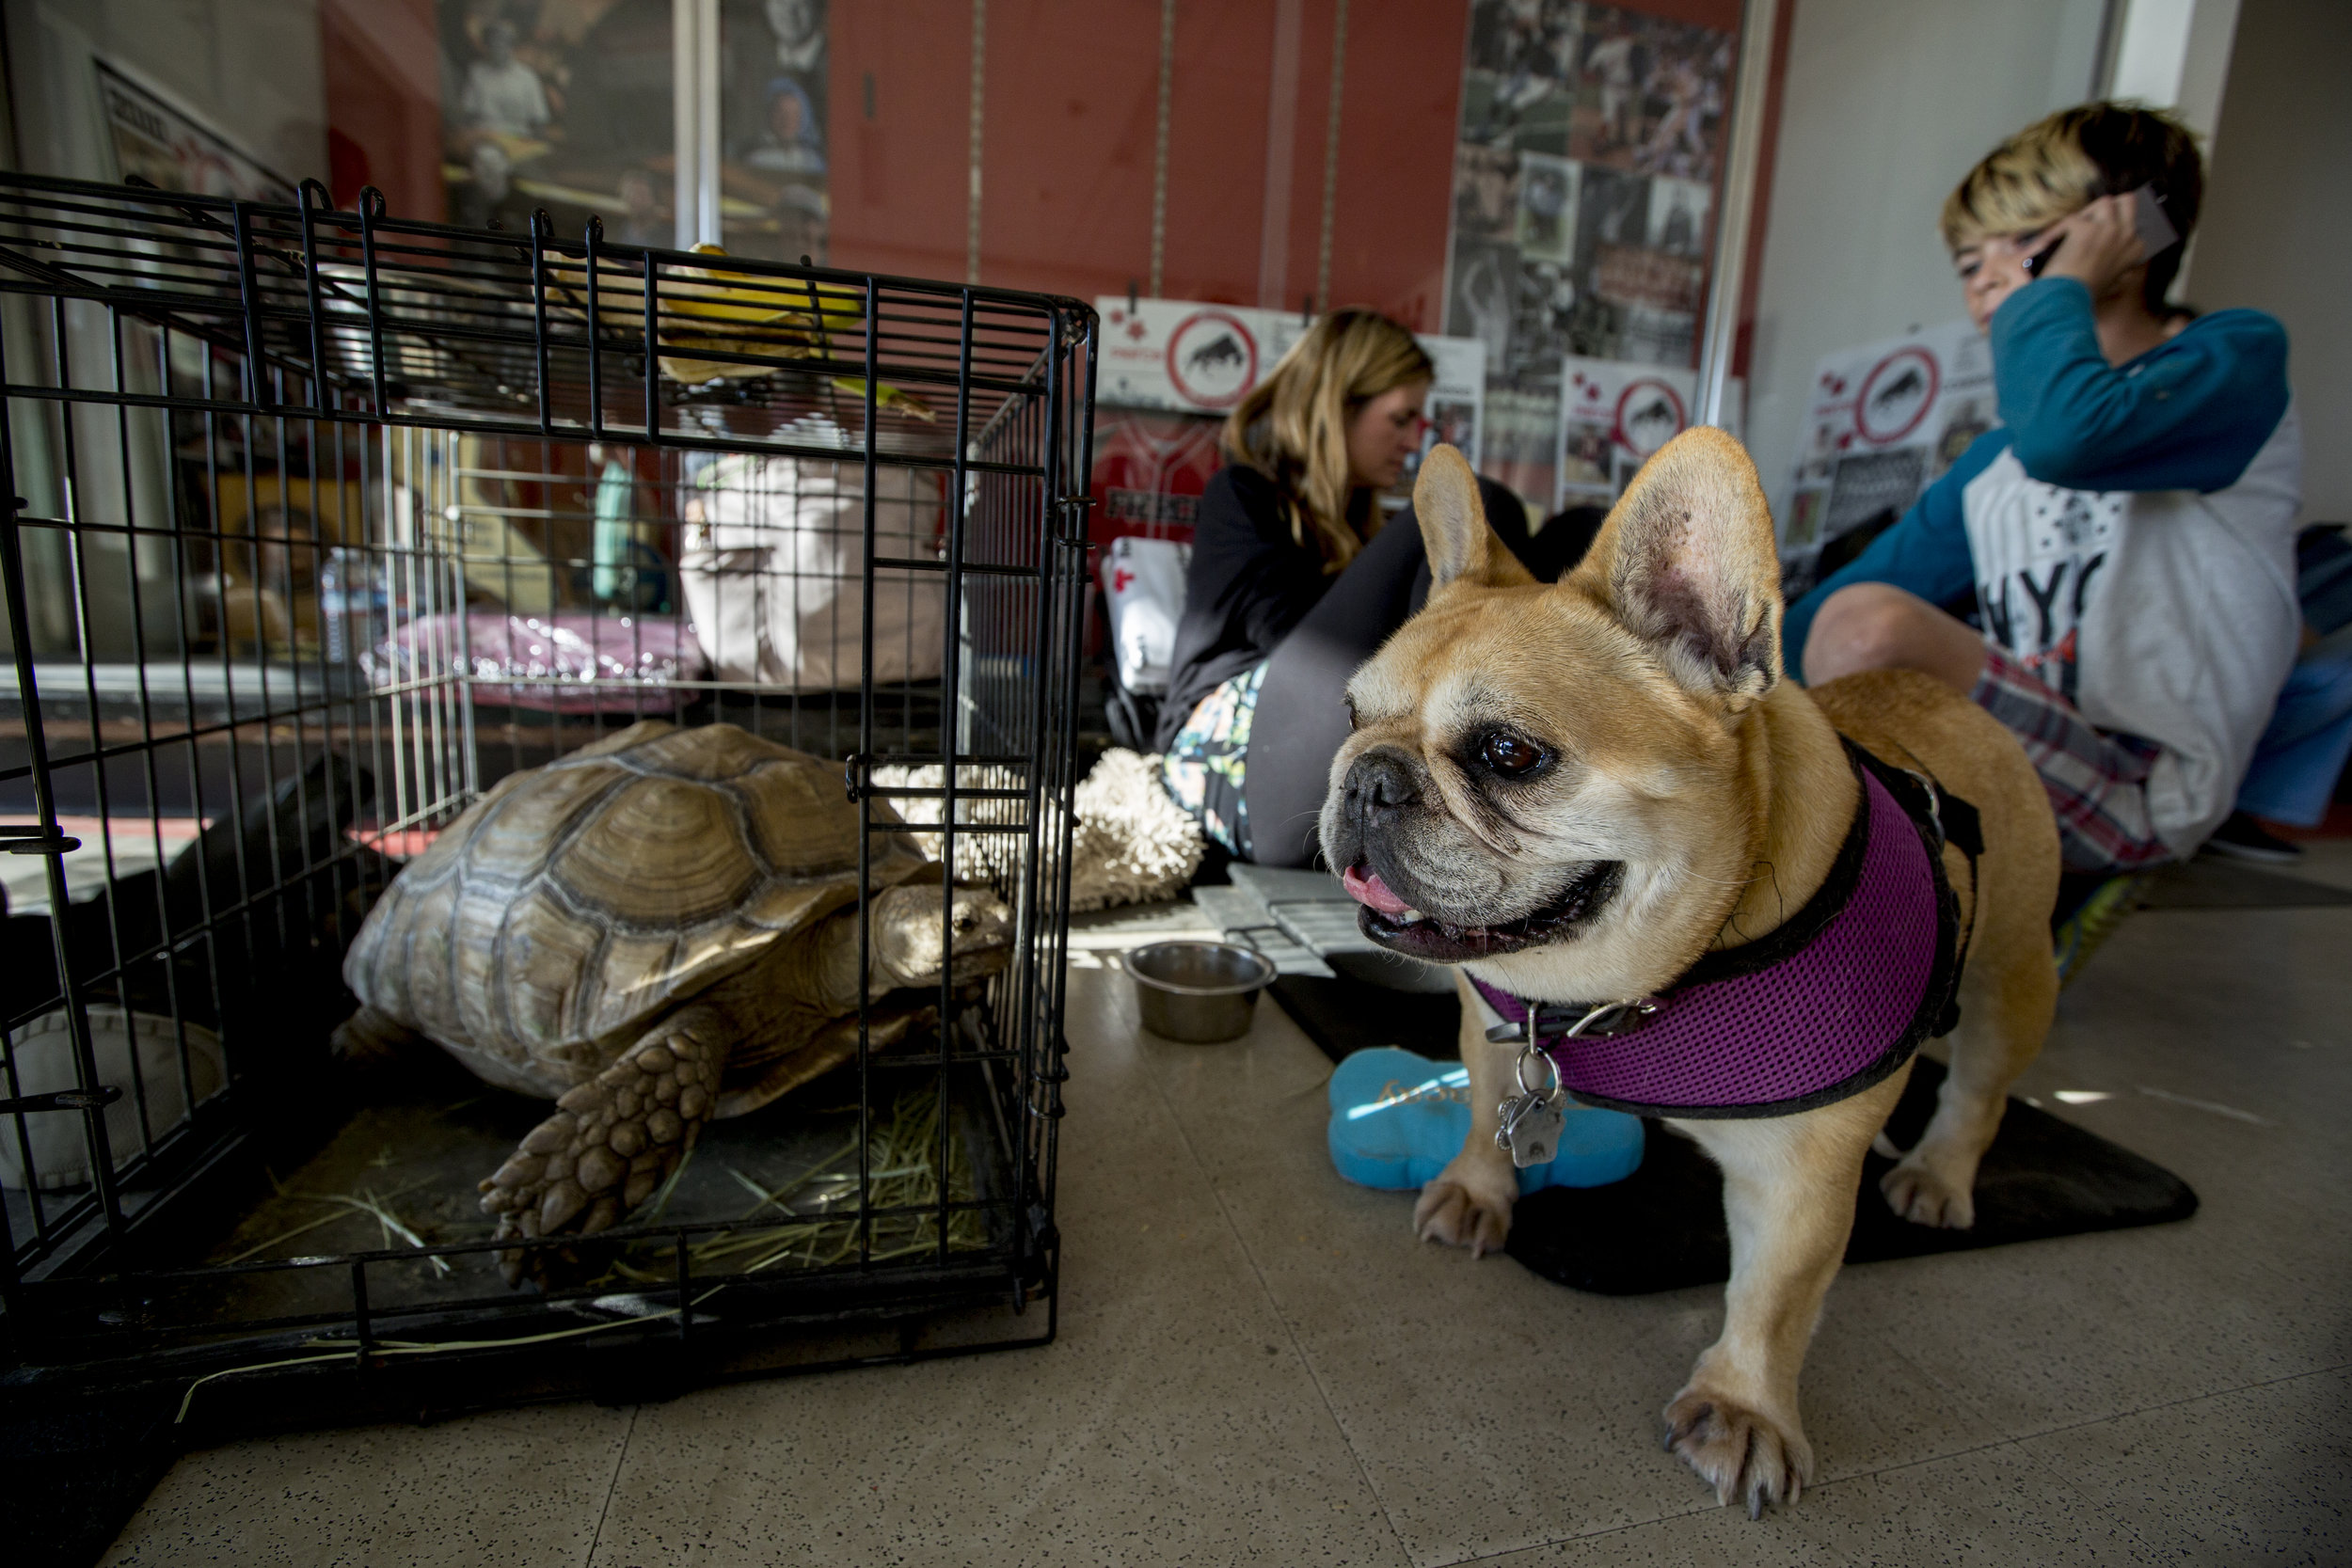 Stella the French Bulldog (right) stands alert while her owner, Stephania D'Amore (center-back), settles in with the rest of the family and pets at the Woolsey fire evacuation center set up at Los Angeles Pierce College on November 9, 2018 in Woodland Hills, Calif. As she waits for a cot, D'more expresses that she is concerned for her pets and wants to get them out of the hallway as soon as possible. She said that she feels exhausted and that this experience has been scary. While D'amore credits the volunteers with being very supportive and coming through with everything that they have promised, she admits that there is some agony in wondering if their home will still be there when they go back. (Jose Lopez)